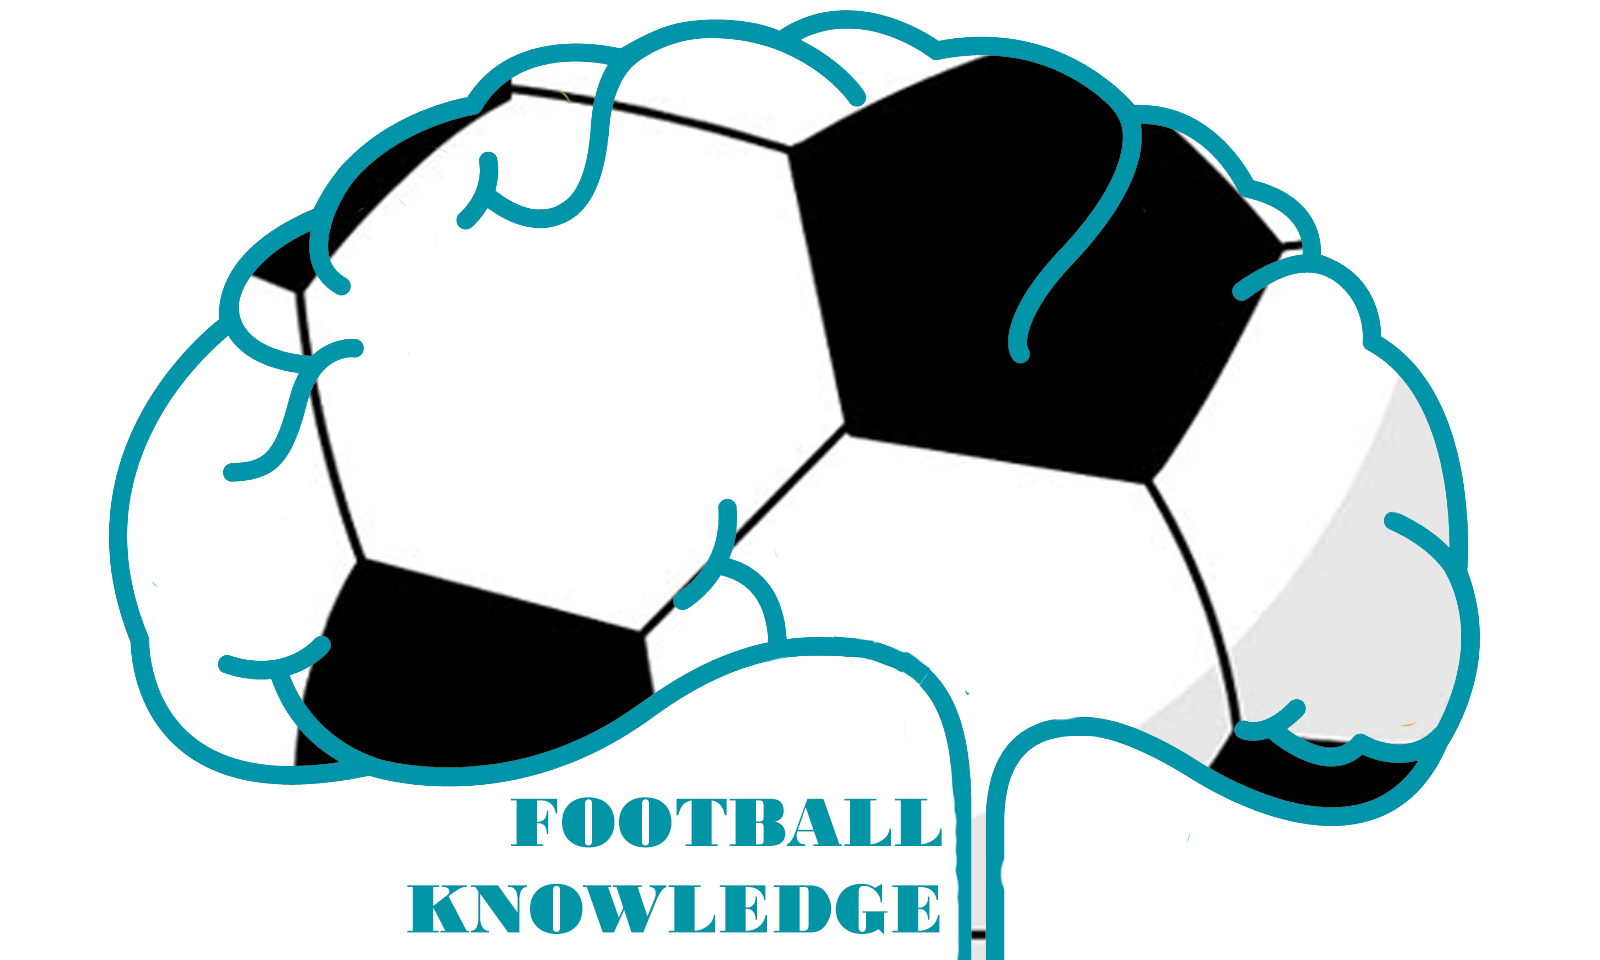 Football Knowledge #4: Questions & Answers